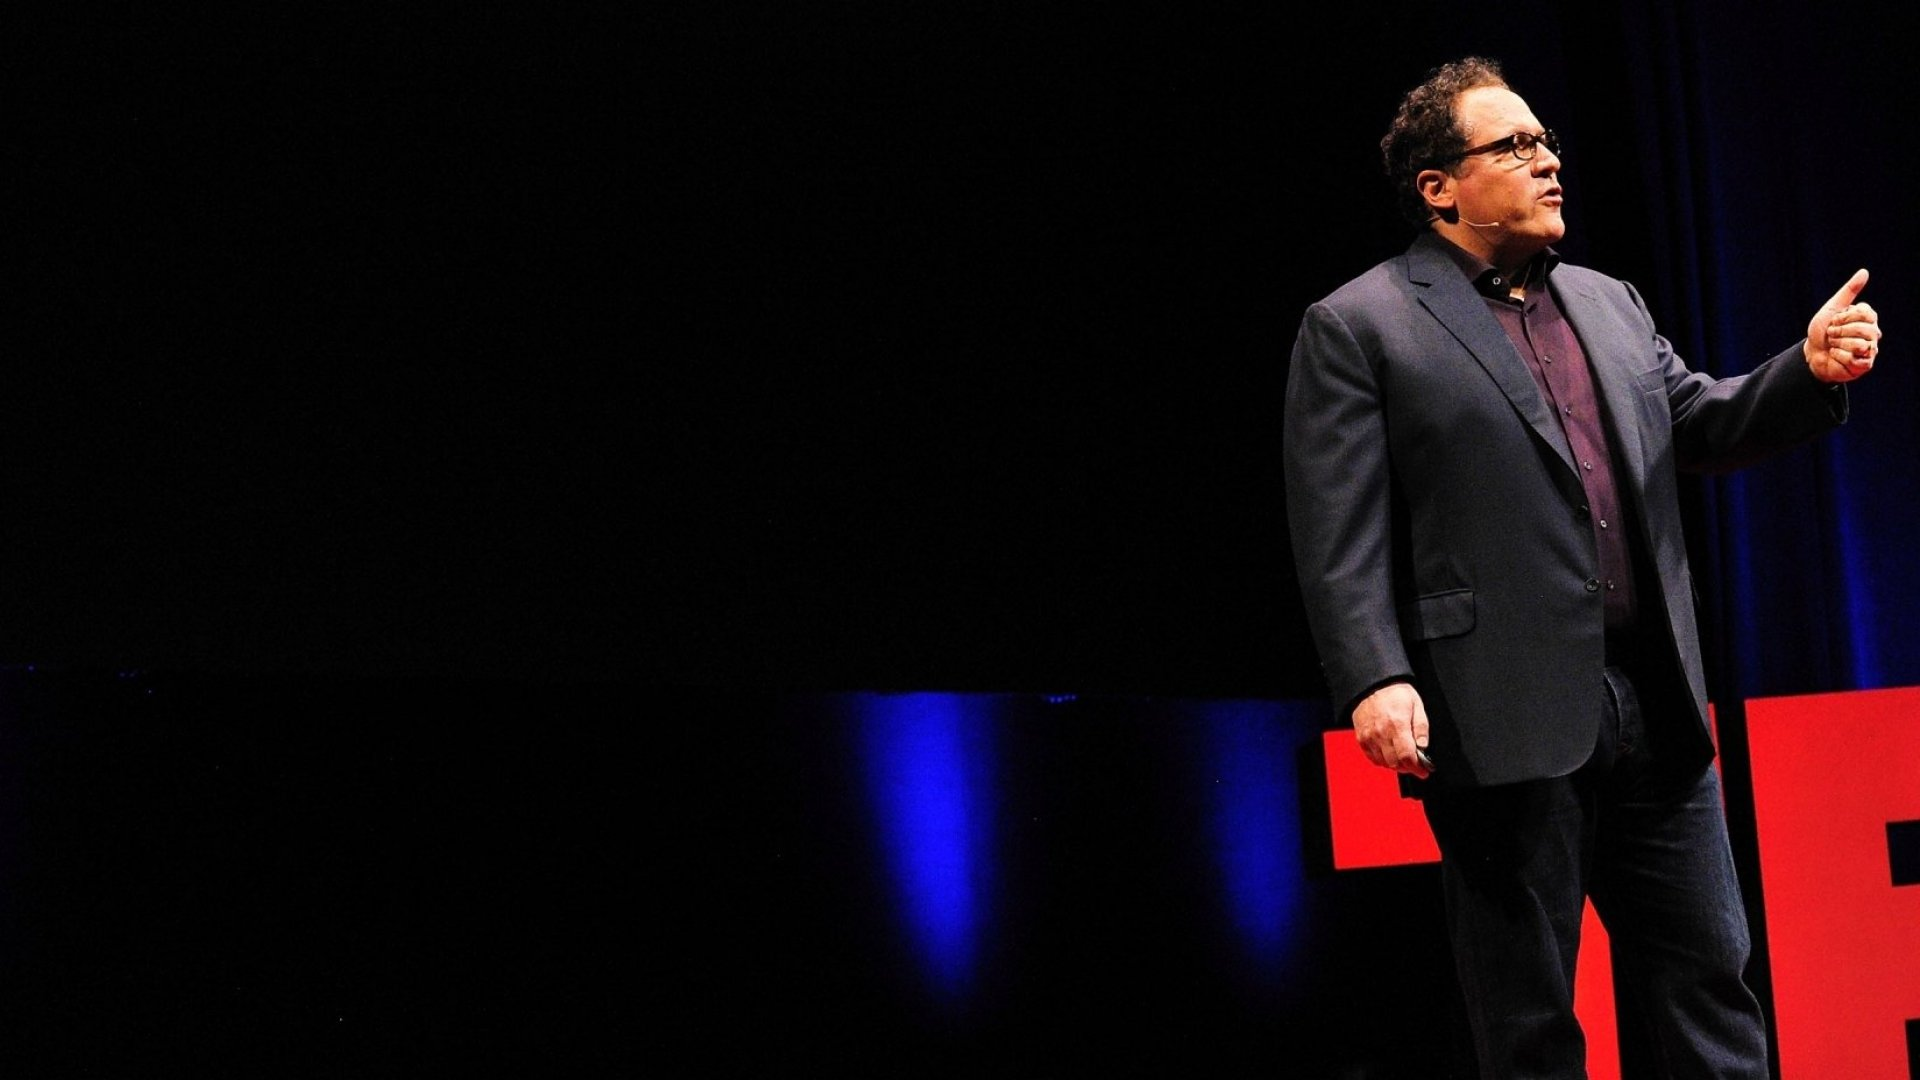 How to Get Picked to Give a TEDx Talk